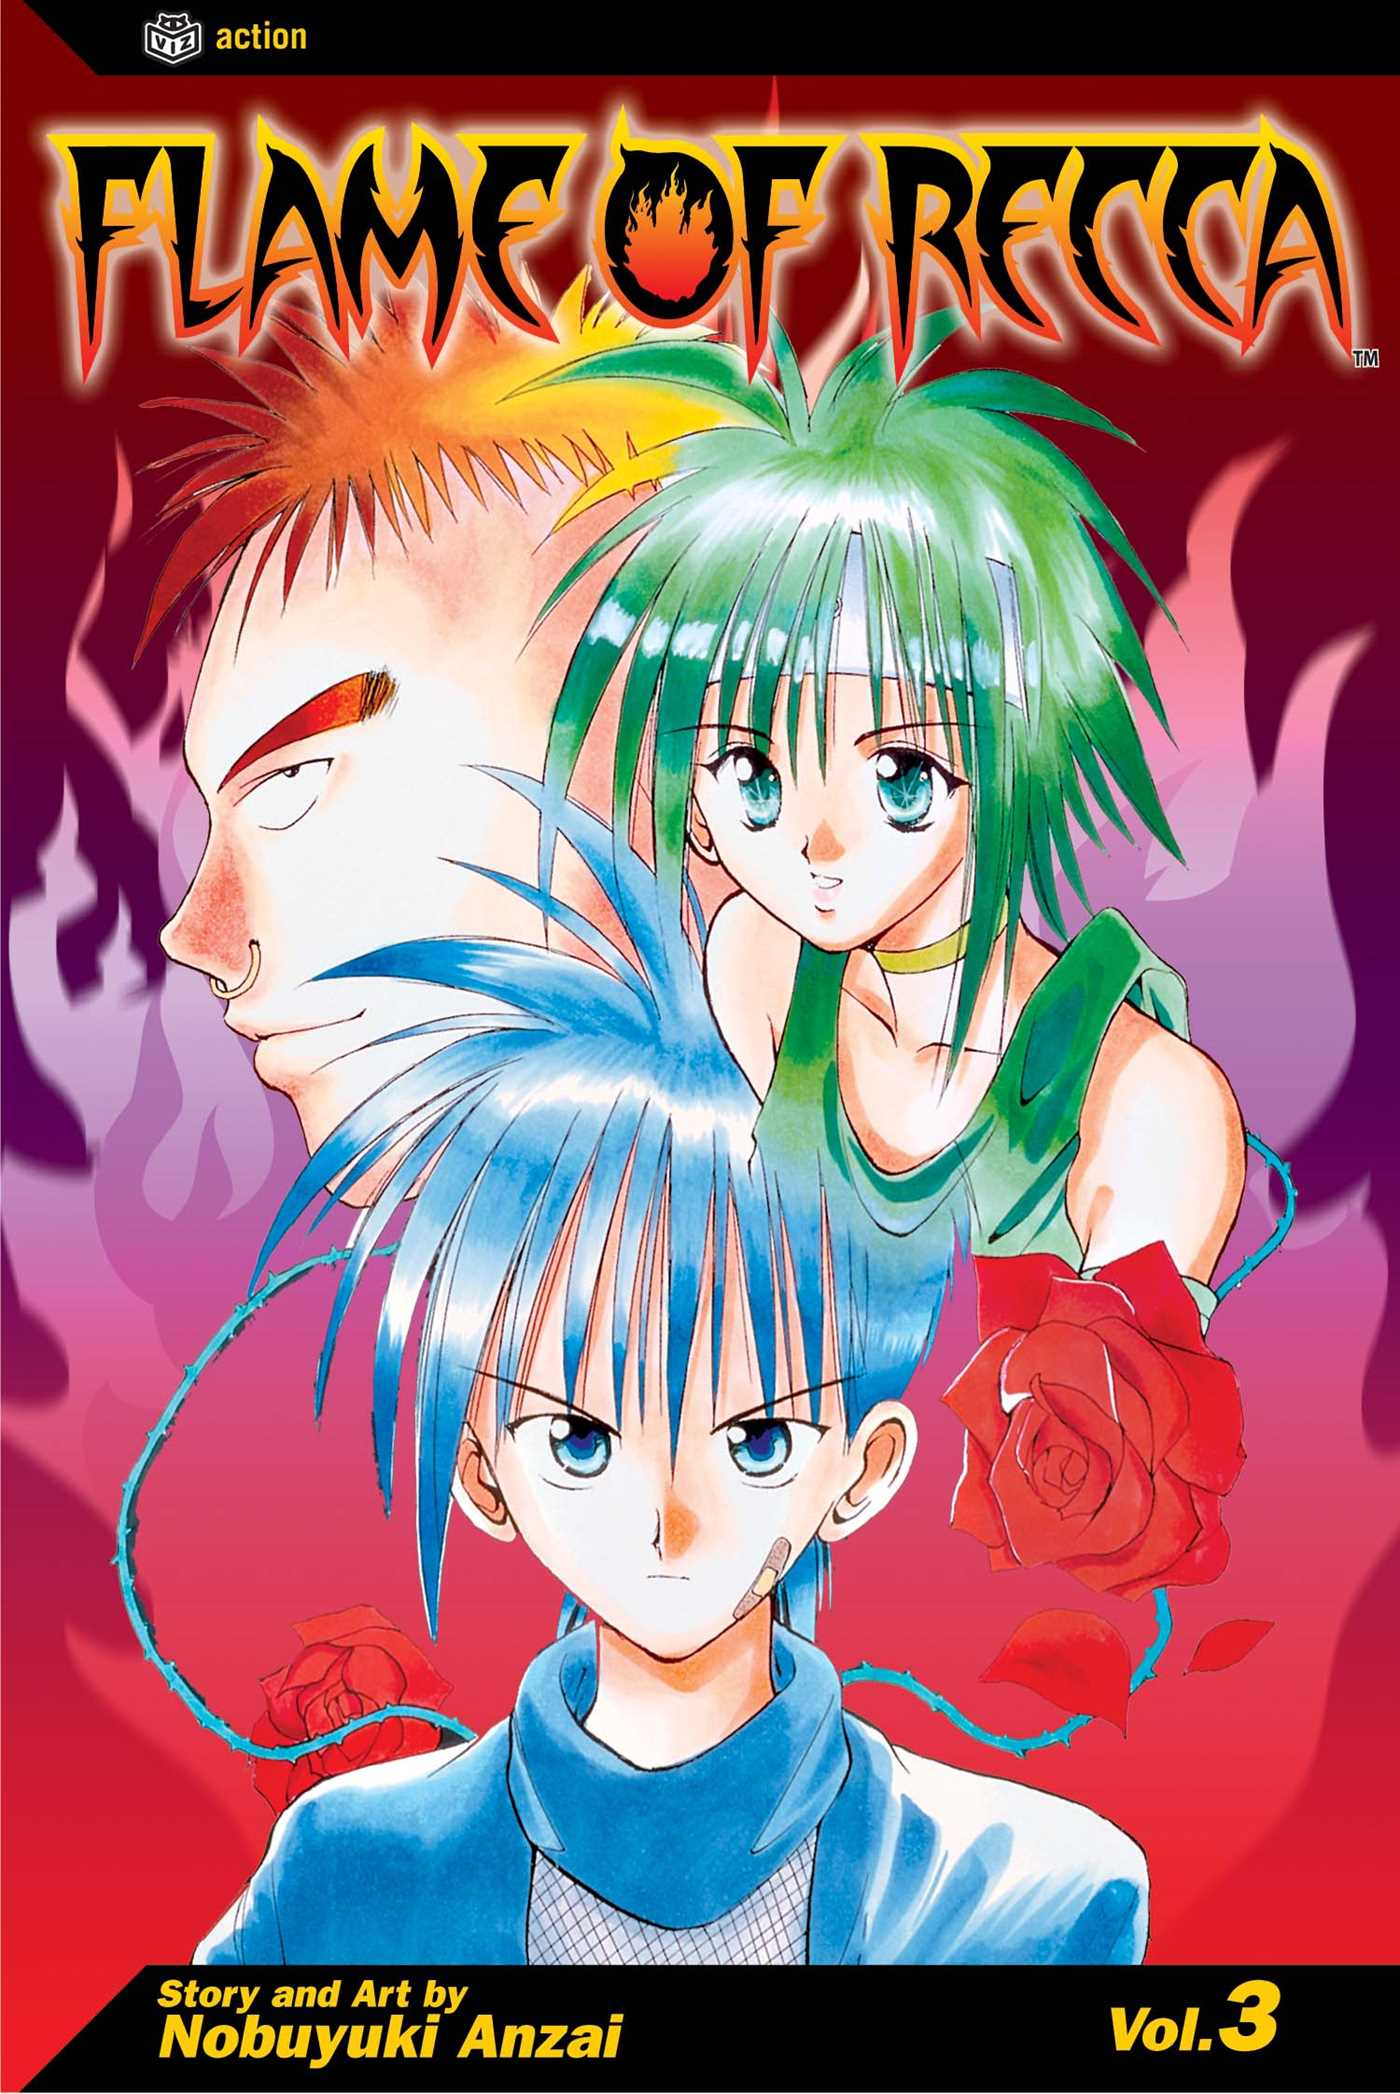 Flame-of-recca-vol-3-9781591160946_hr